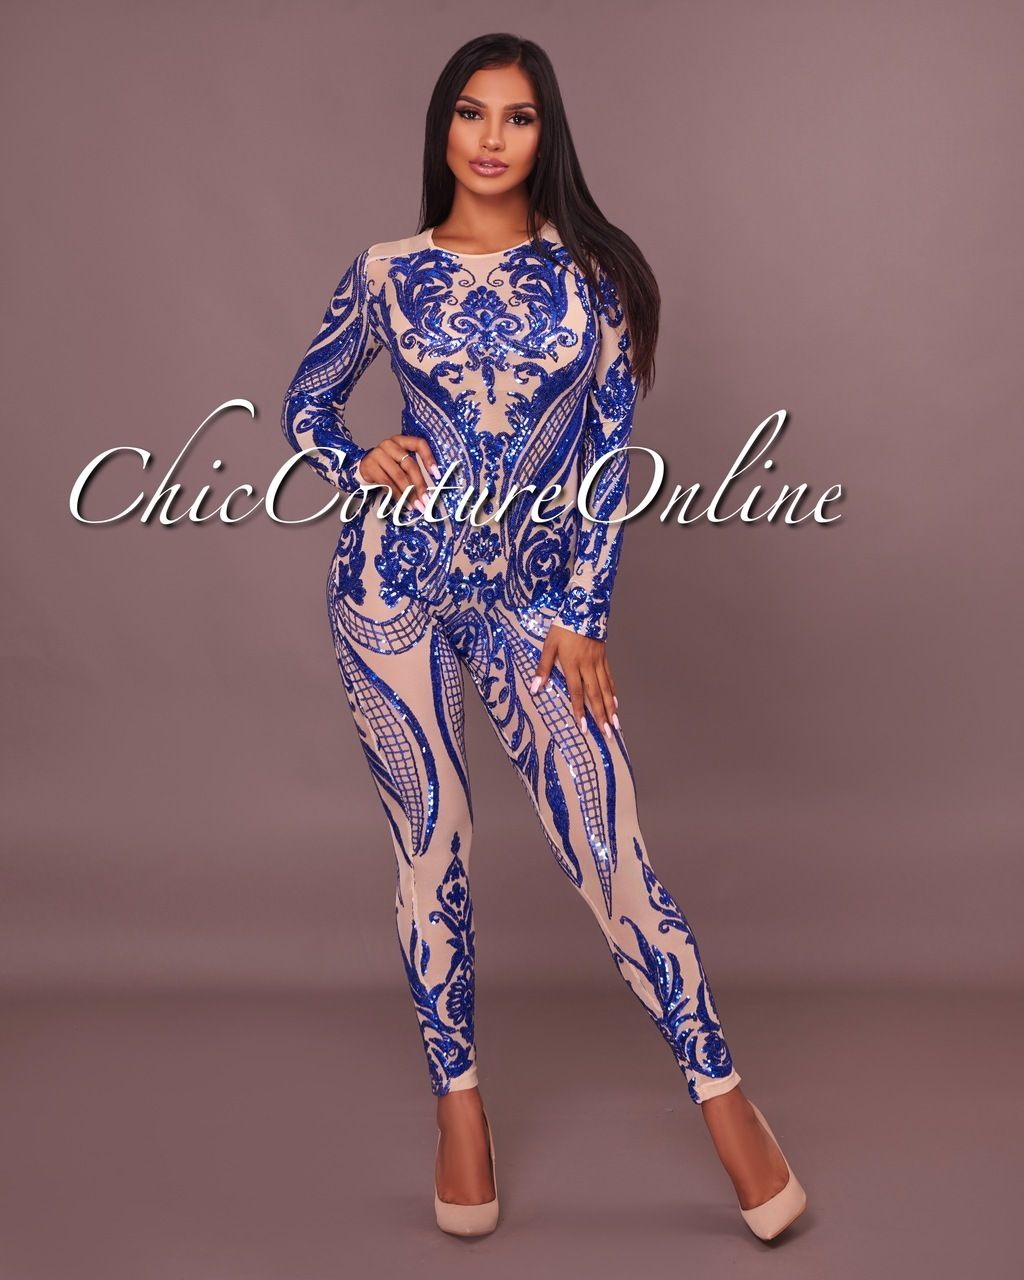 418feb6ff48 Chic Couture Online - Honesty Royal-Blue Sequins Nude Semi-Sheer Mesh  Jumpsuit